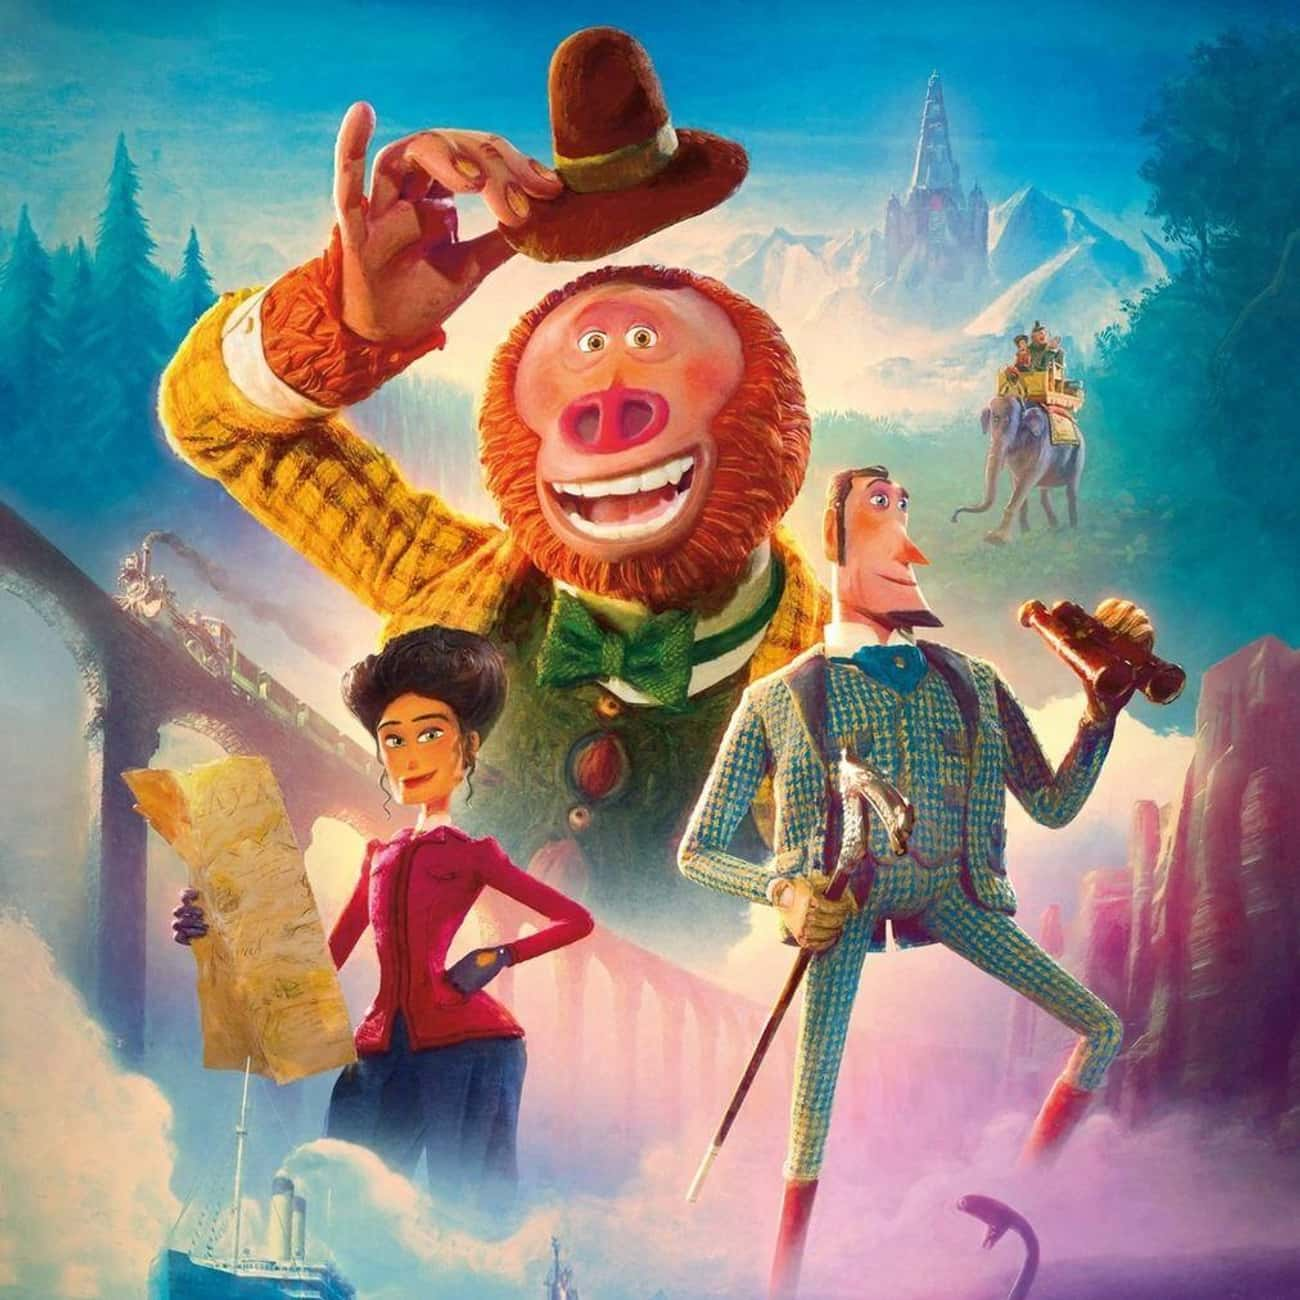 Missing Link is listed (or ranked) 2 on the list The Biggest Box Office Bombs of 2019, Ranked